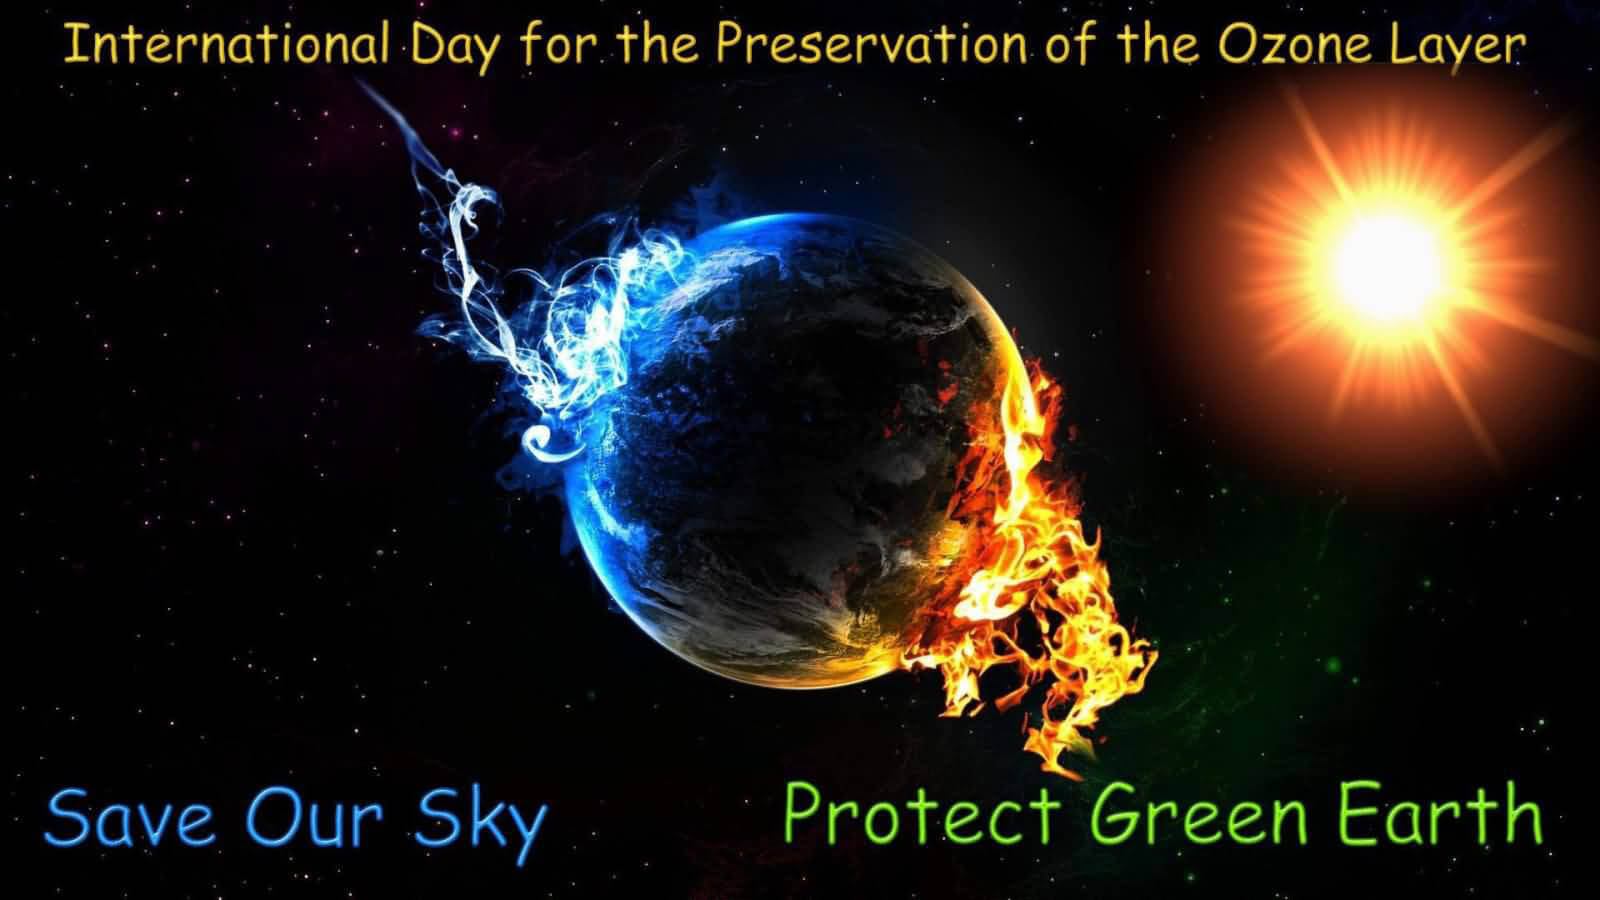 ozone day layer protection prevention awareness save green earth wallpaper